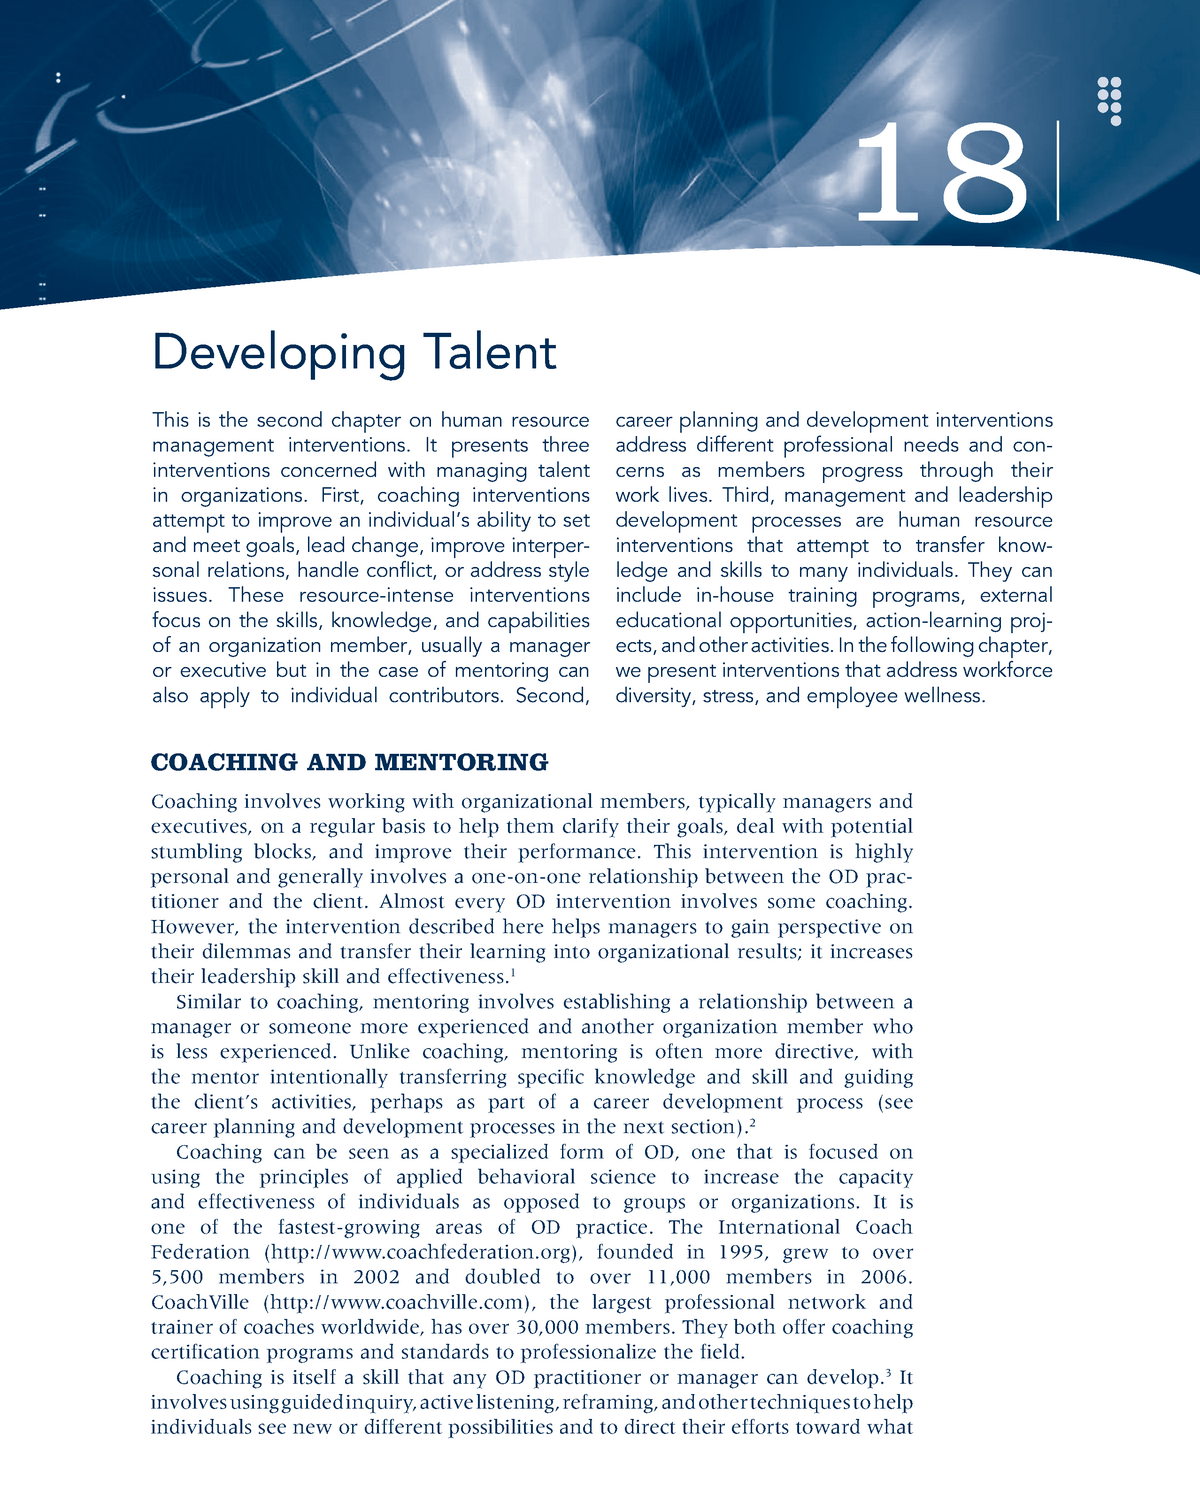 Chapter 18 Developing Talent - MGMT 416: Organizational